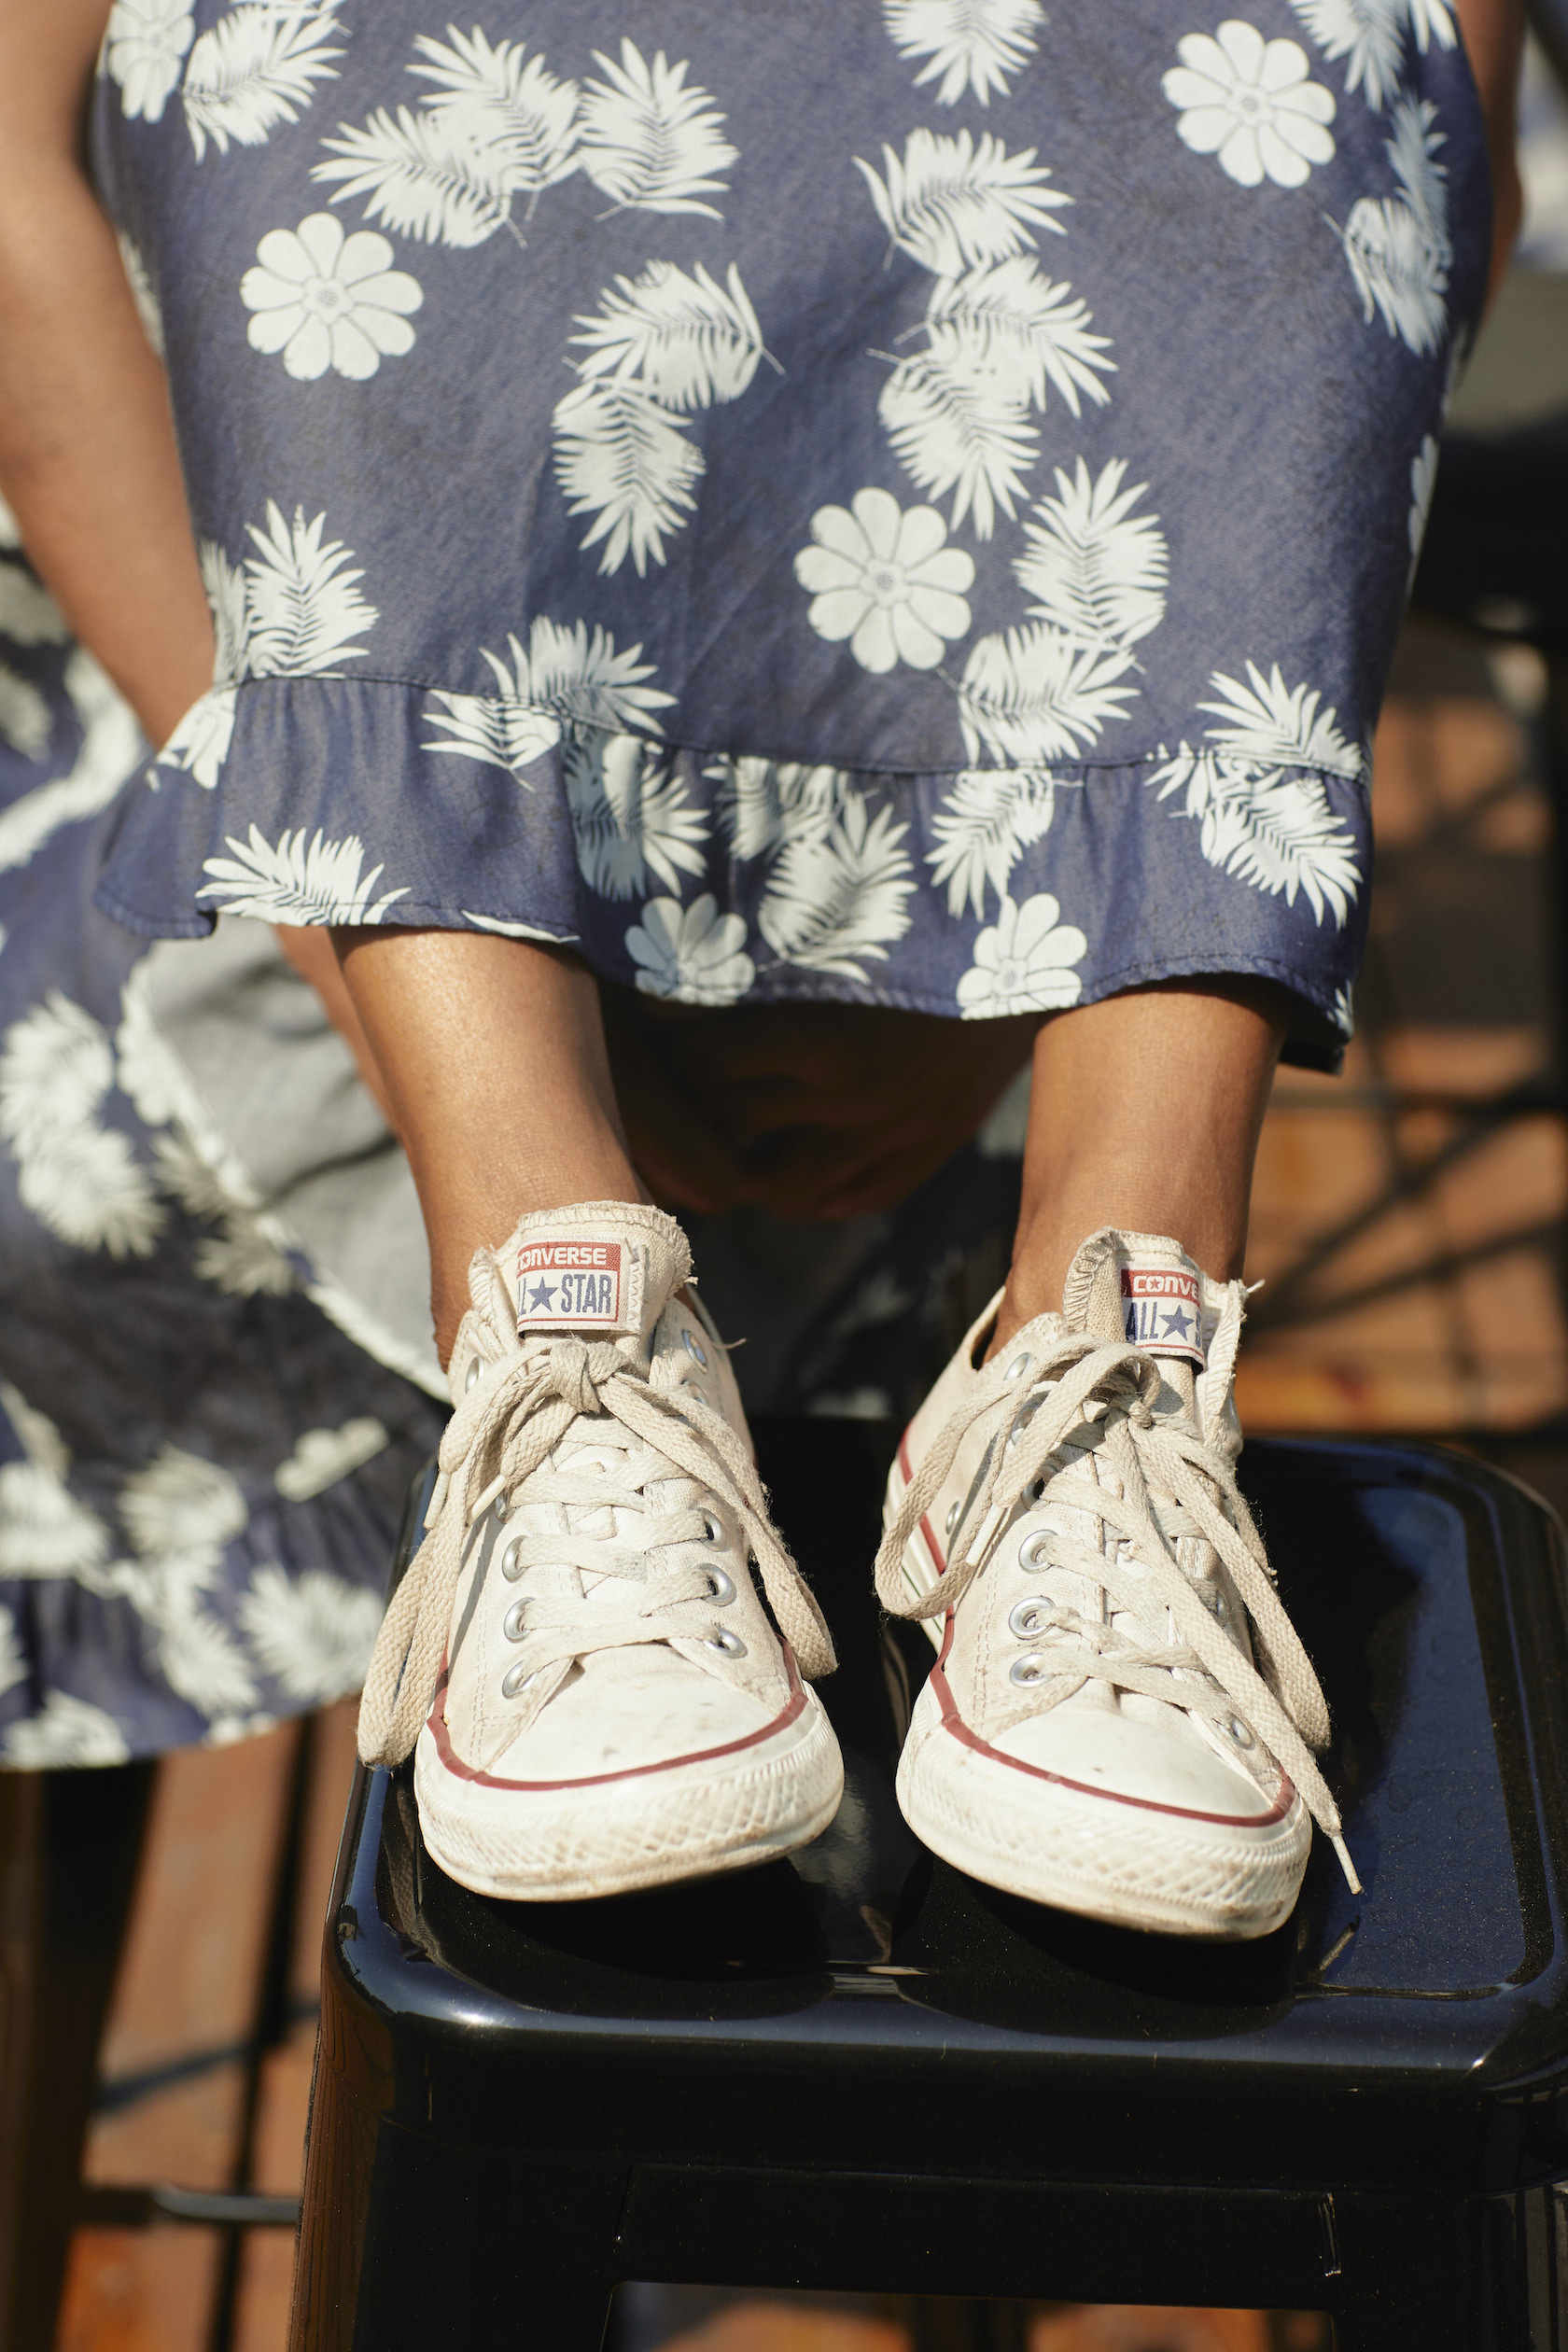 Converse sneakers with a feminine dress // A Week Of Outfits With Dominique Drakeford, Founder Of Melanin & Sustainable Style on The Good Trade